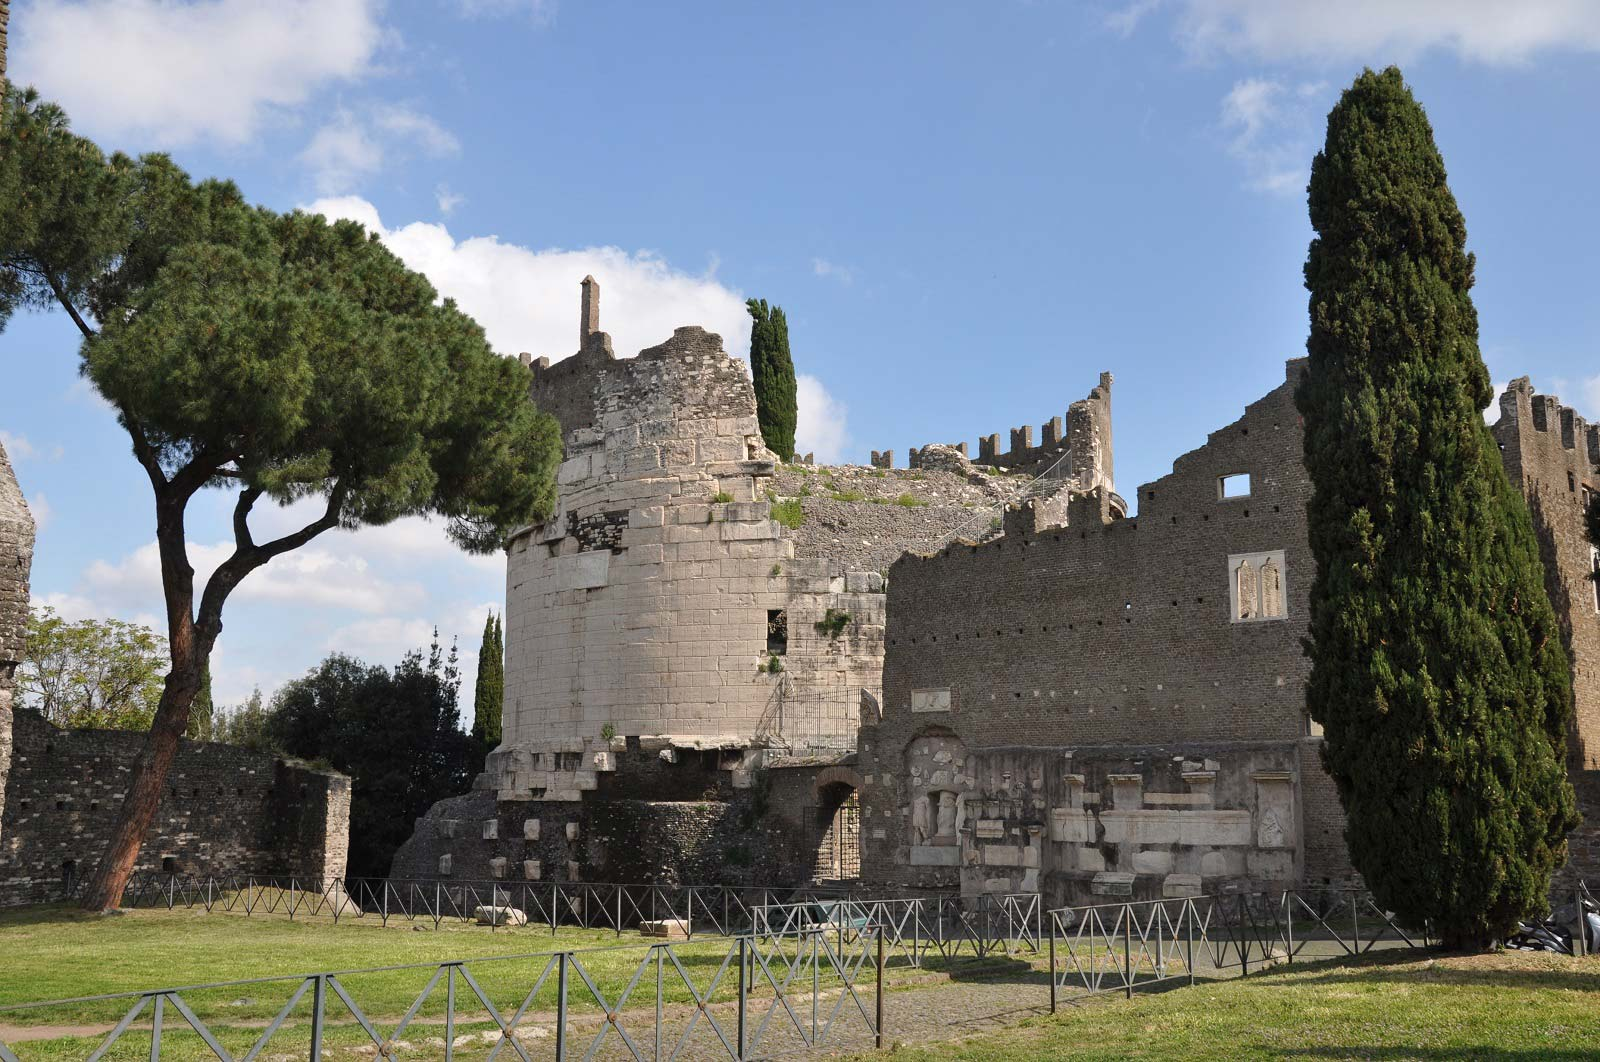 Undiscovered Rome - Catacombs of San Callisto and Appian Way tour